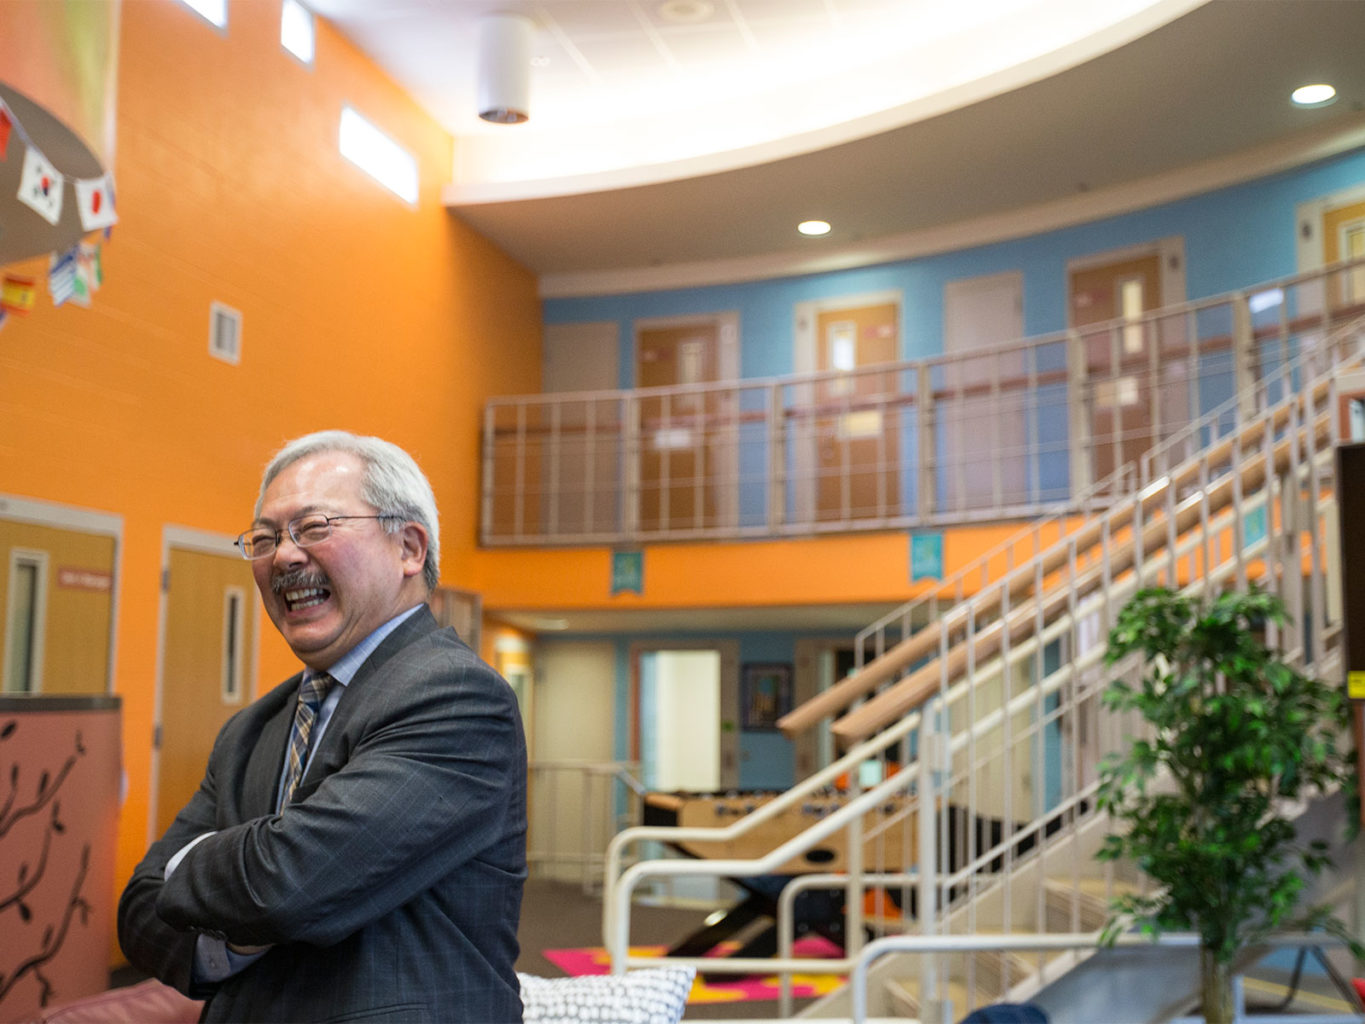 Mayor Ed Lee smiles during the grand opening of the Merit Center at San Francisco's Juvenille Justice Center on Nov. 15, 2016. (Jessica Christian/S.F. Examiner)